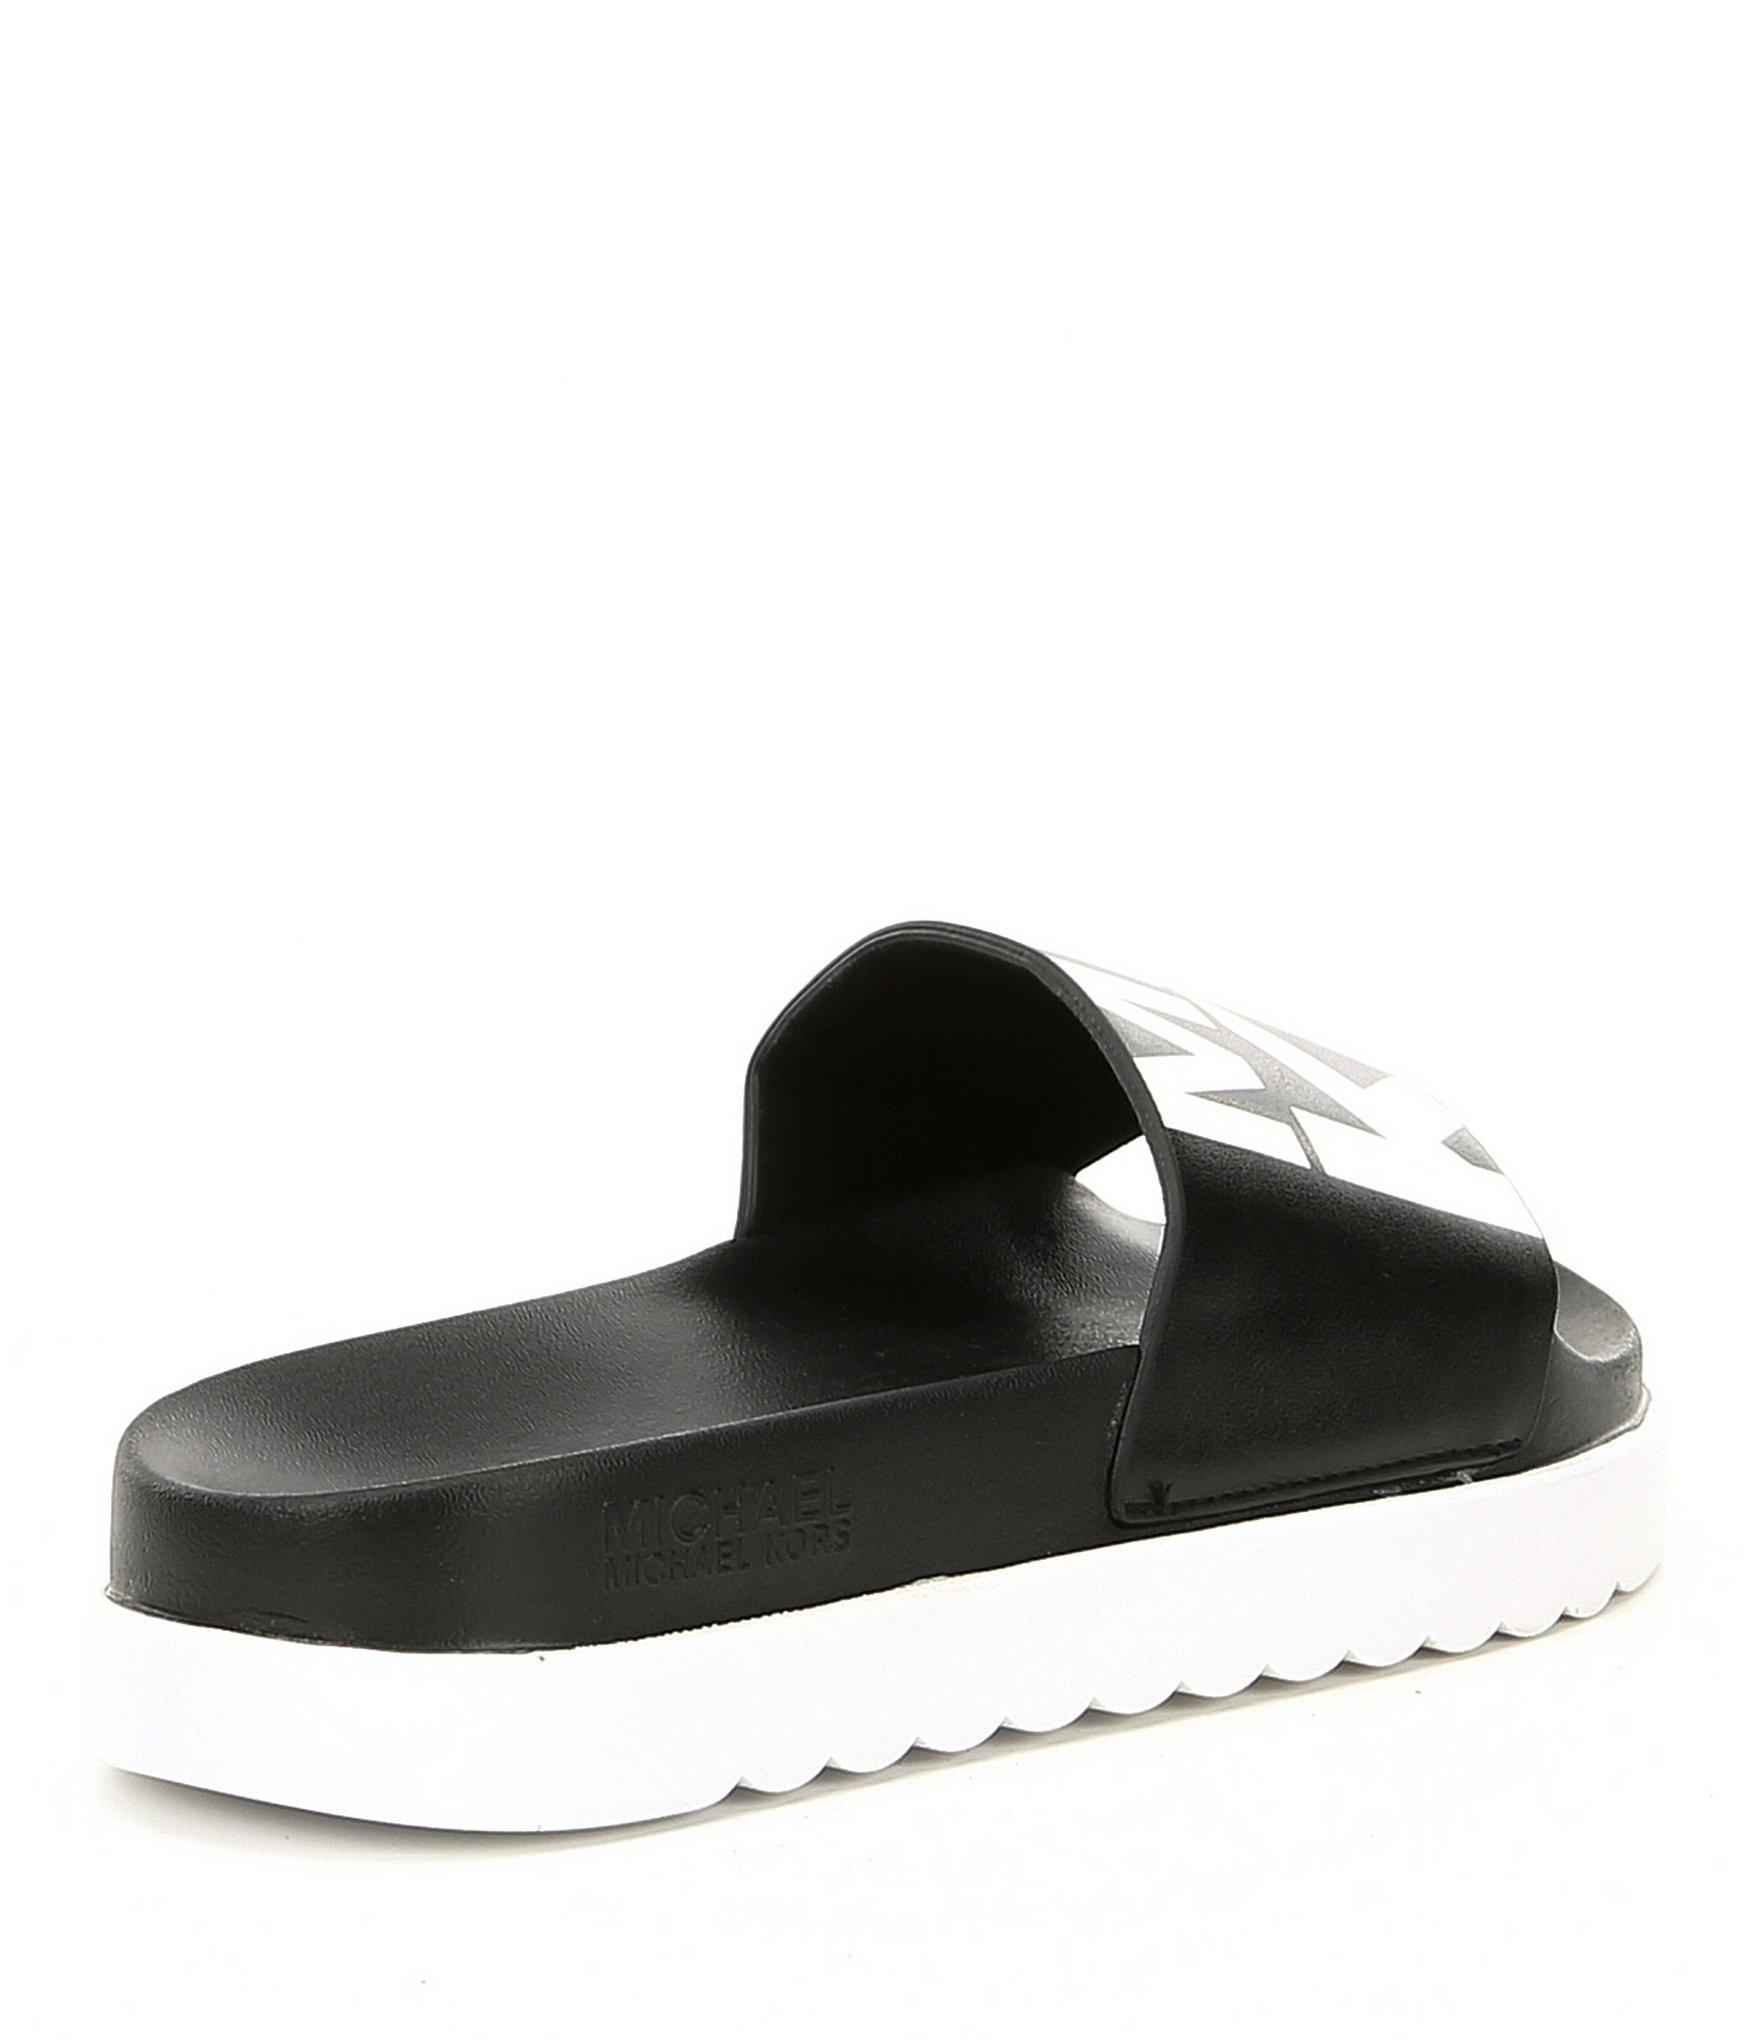 af2a8e7e4195 Lyst - MICHAEL Michael Kors Tyra Logo Slide Sandals in Black